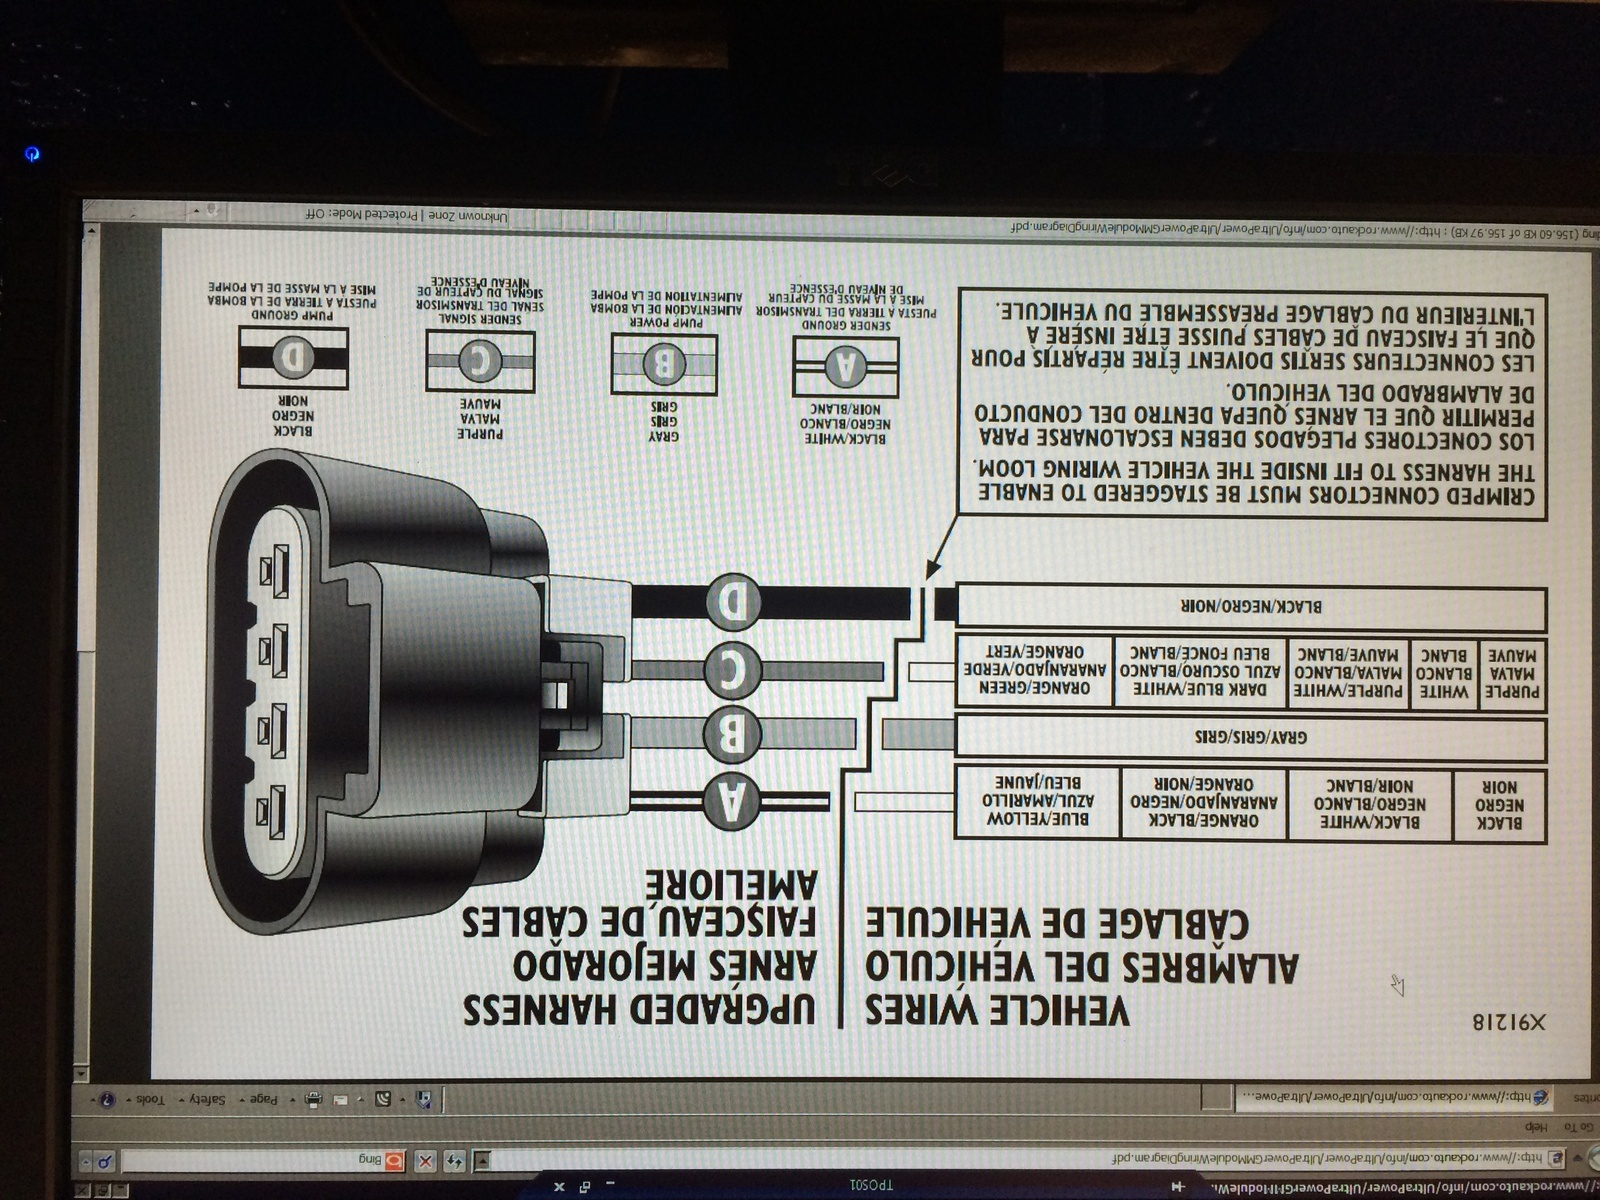 1997 Chevrolet Malibu Wiring Diagram And Electrical System